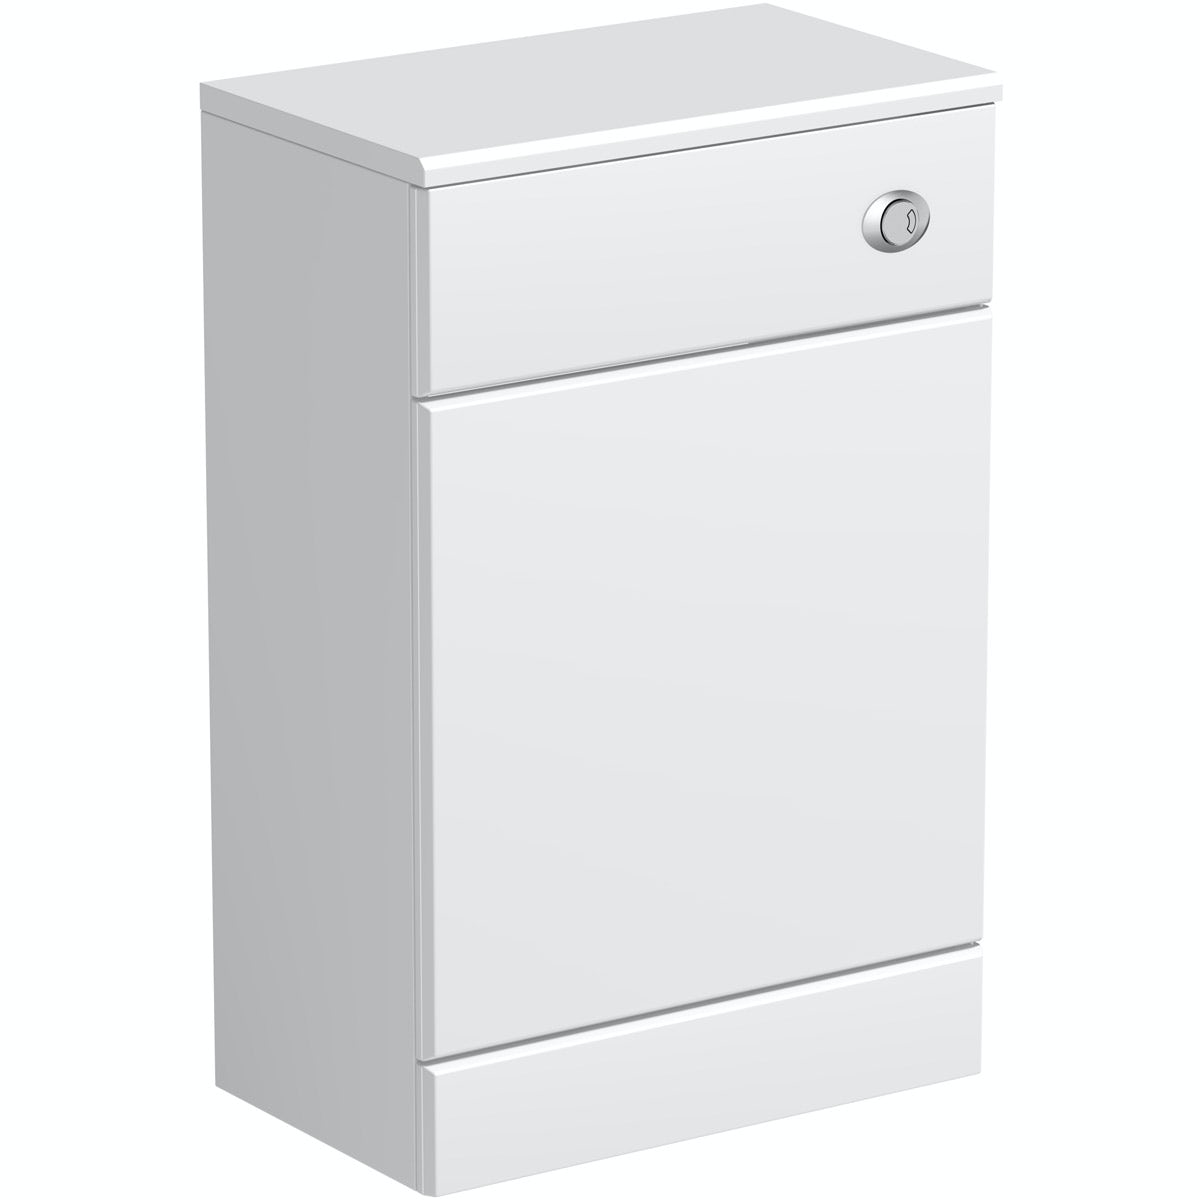 Eden white slimline back to wall toilet unit